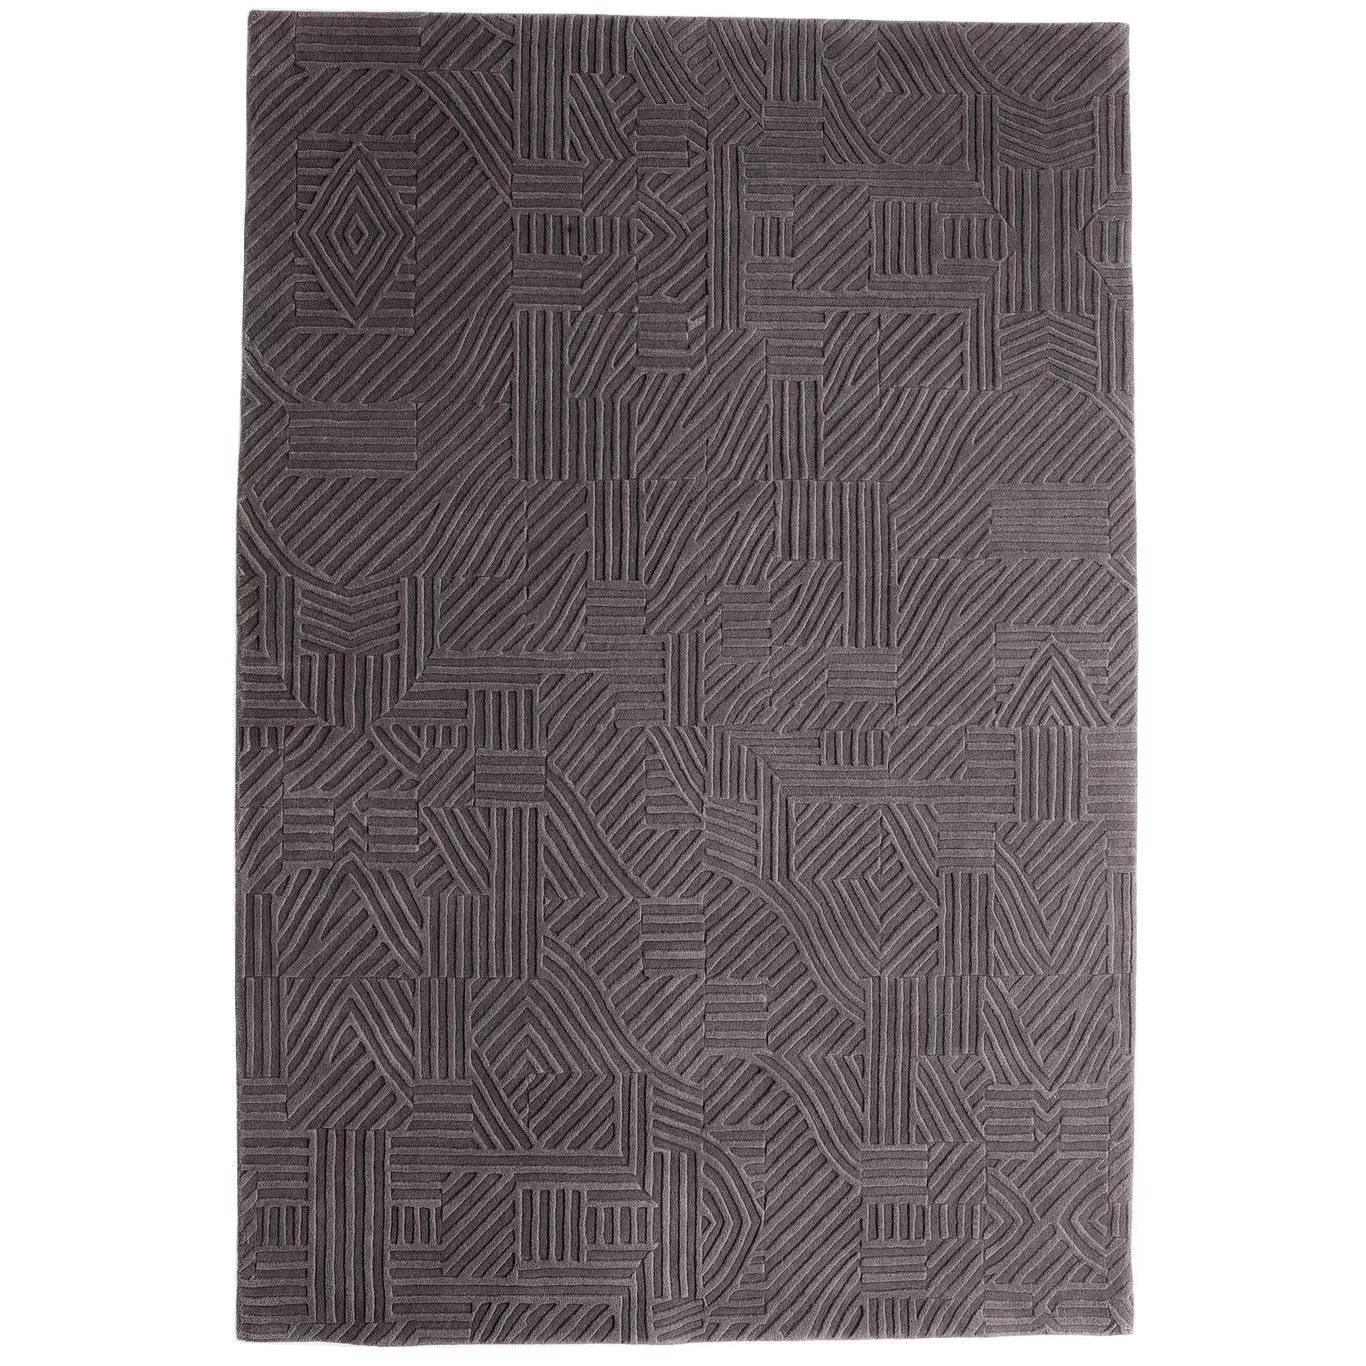 African Pattern Two Area Rug in Hand-Tufted Wool by Milton Glaser Medium